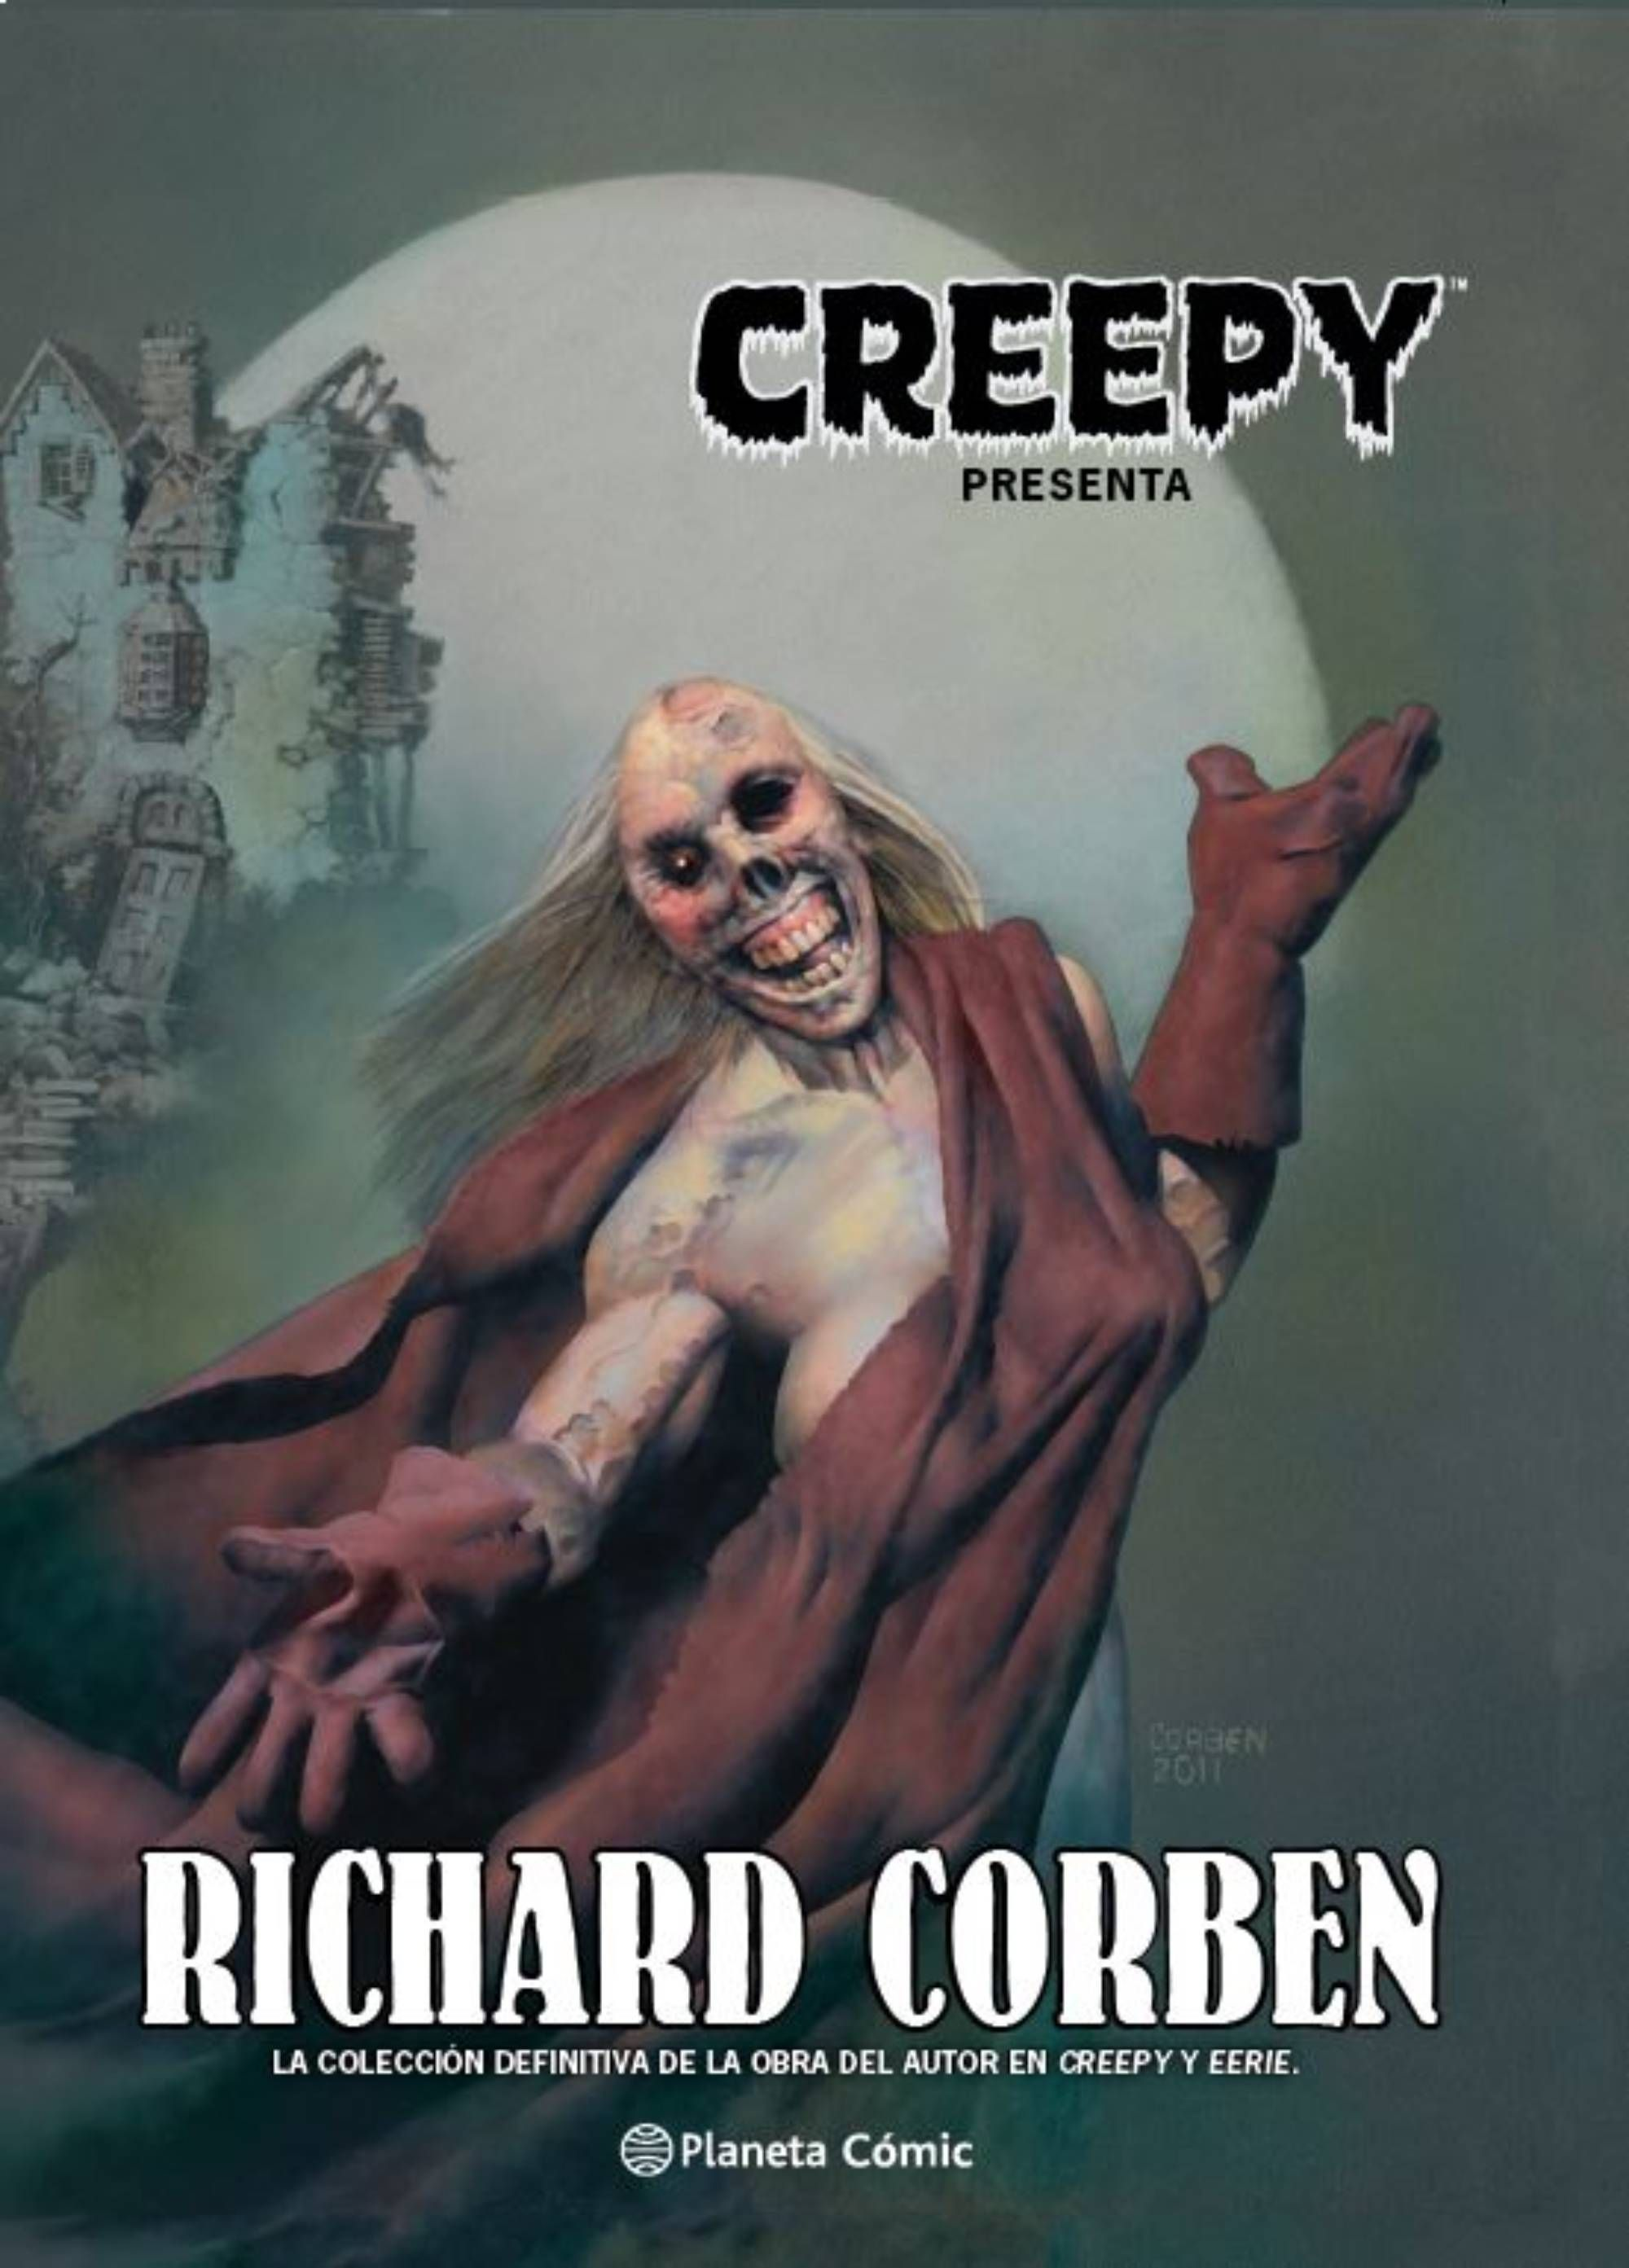 CREEPY RICHARD CORBEN NUEVA EDICION